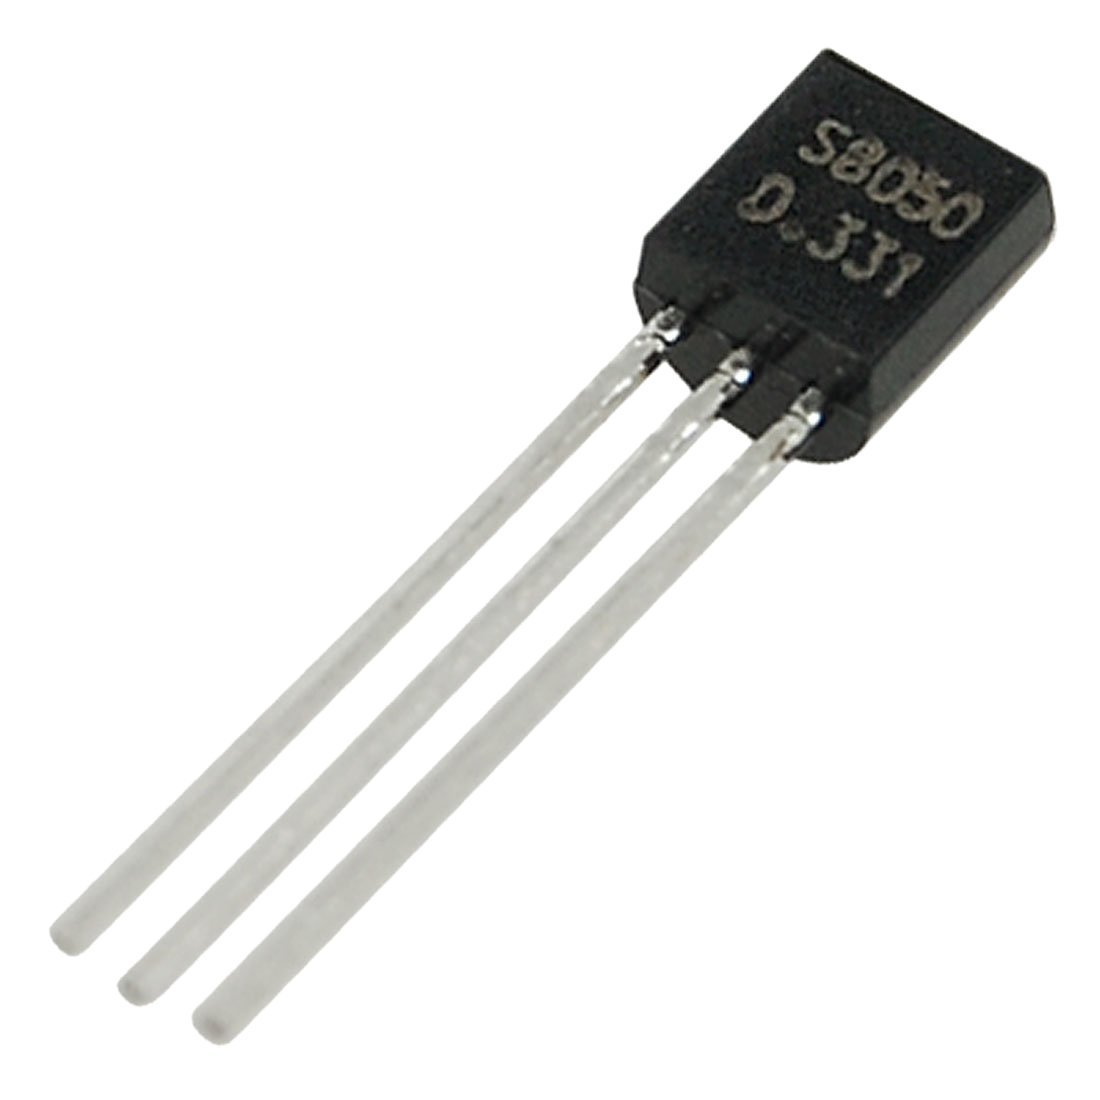 45 Pcs Complementary S8550 NPN Silicon Transistors S8050 TO-92